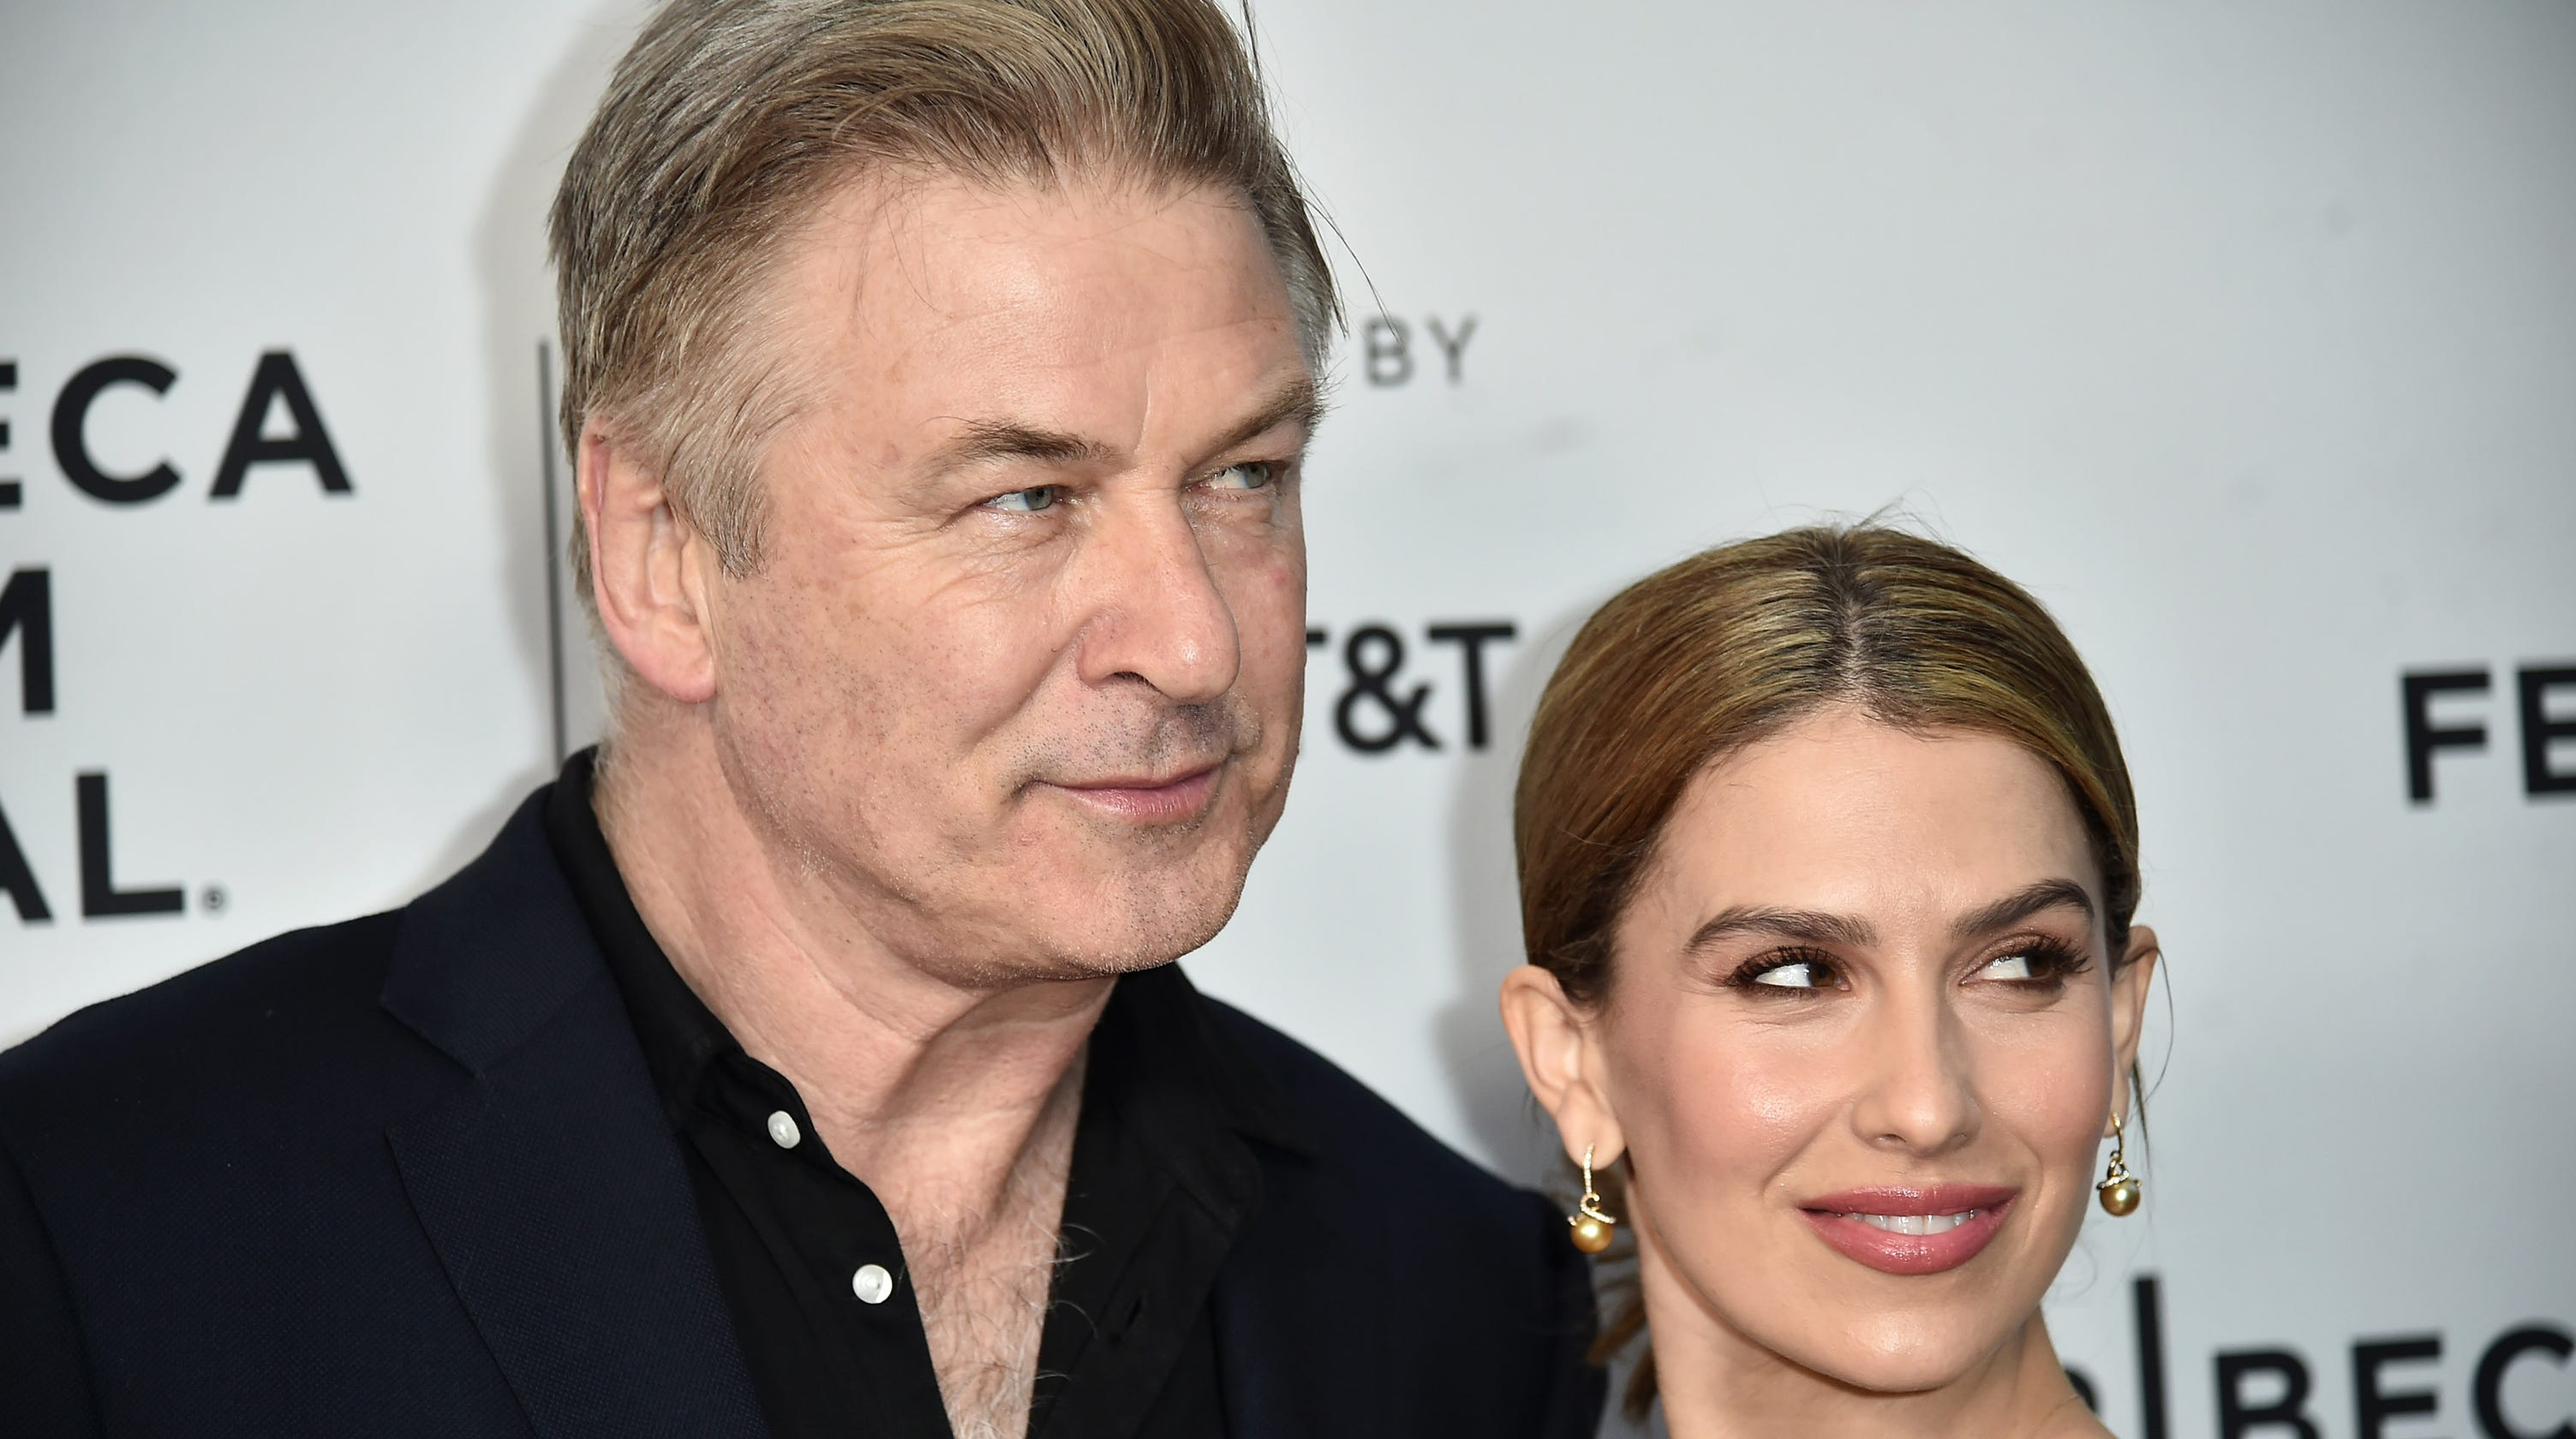 Alec Baldwin shares emotions of finding out his wife is pregnant, then a heartbreaking loss